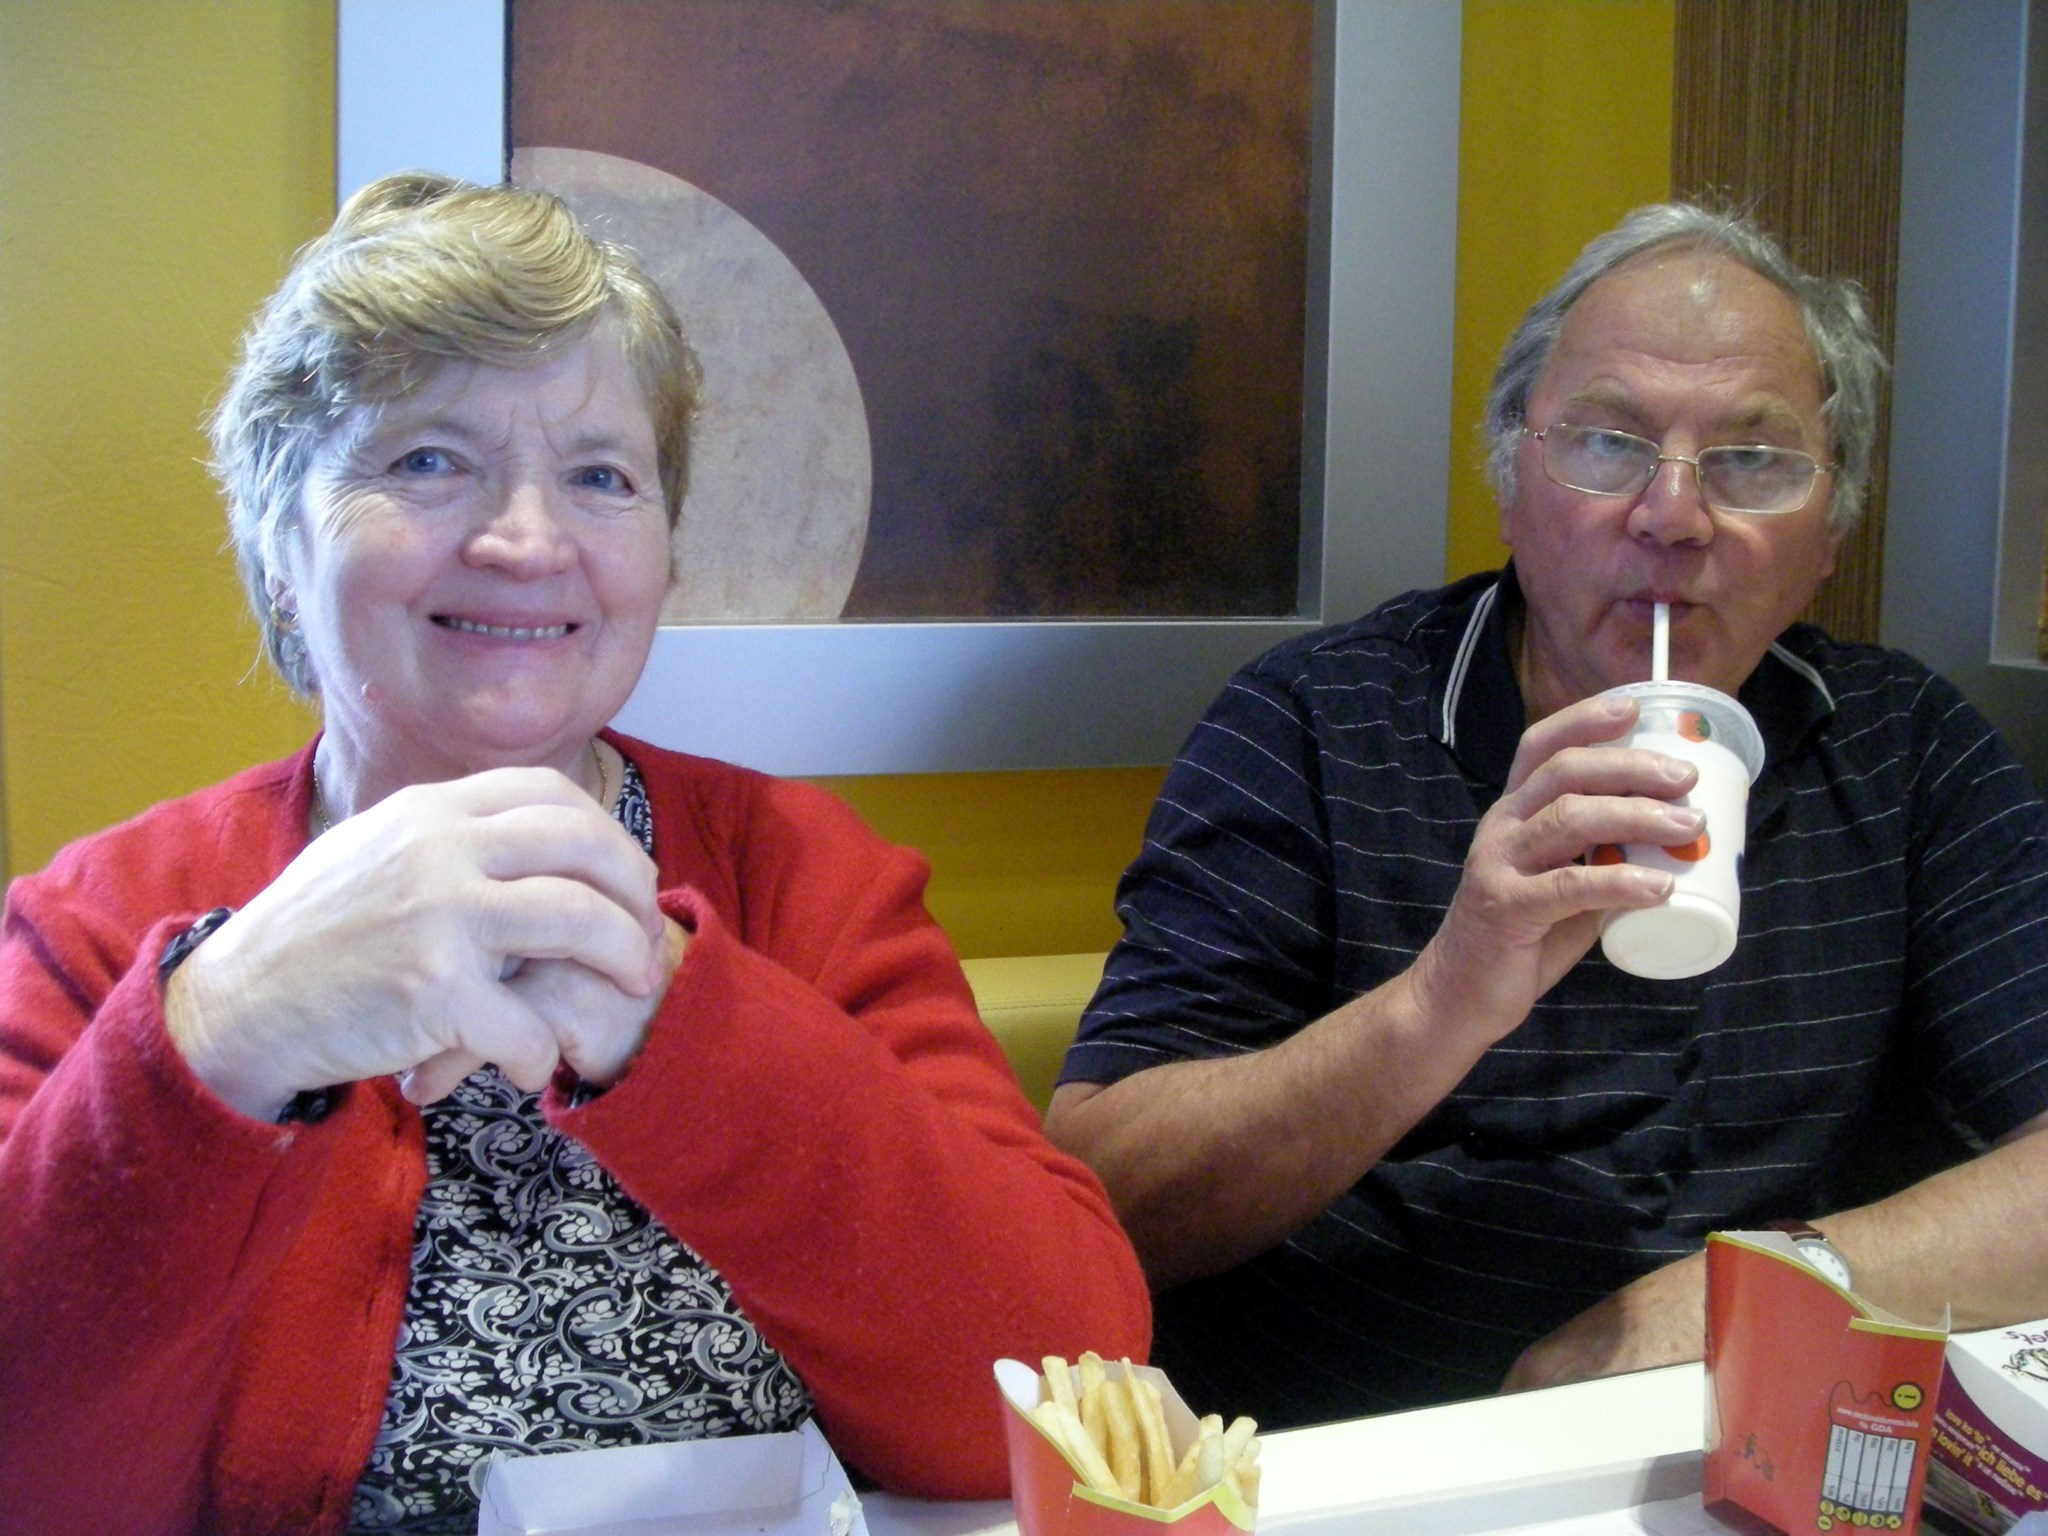 Mum and Dad at McDonalds!